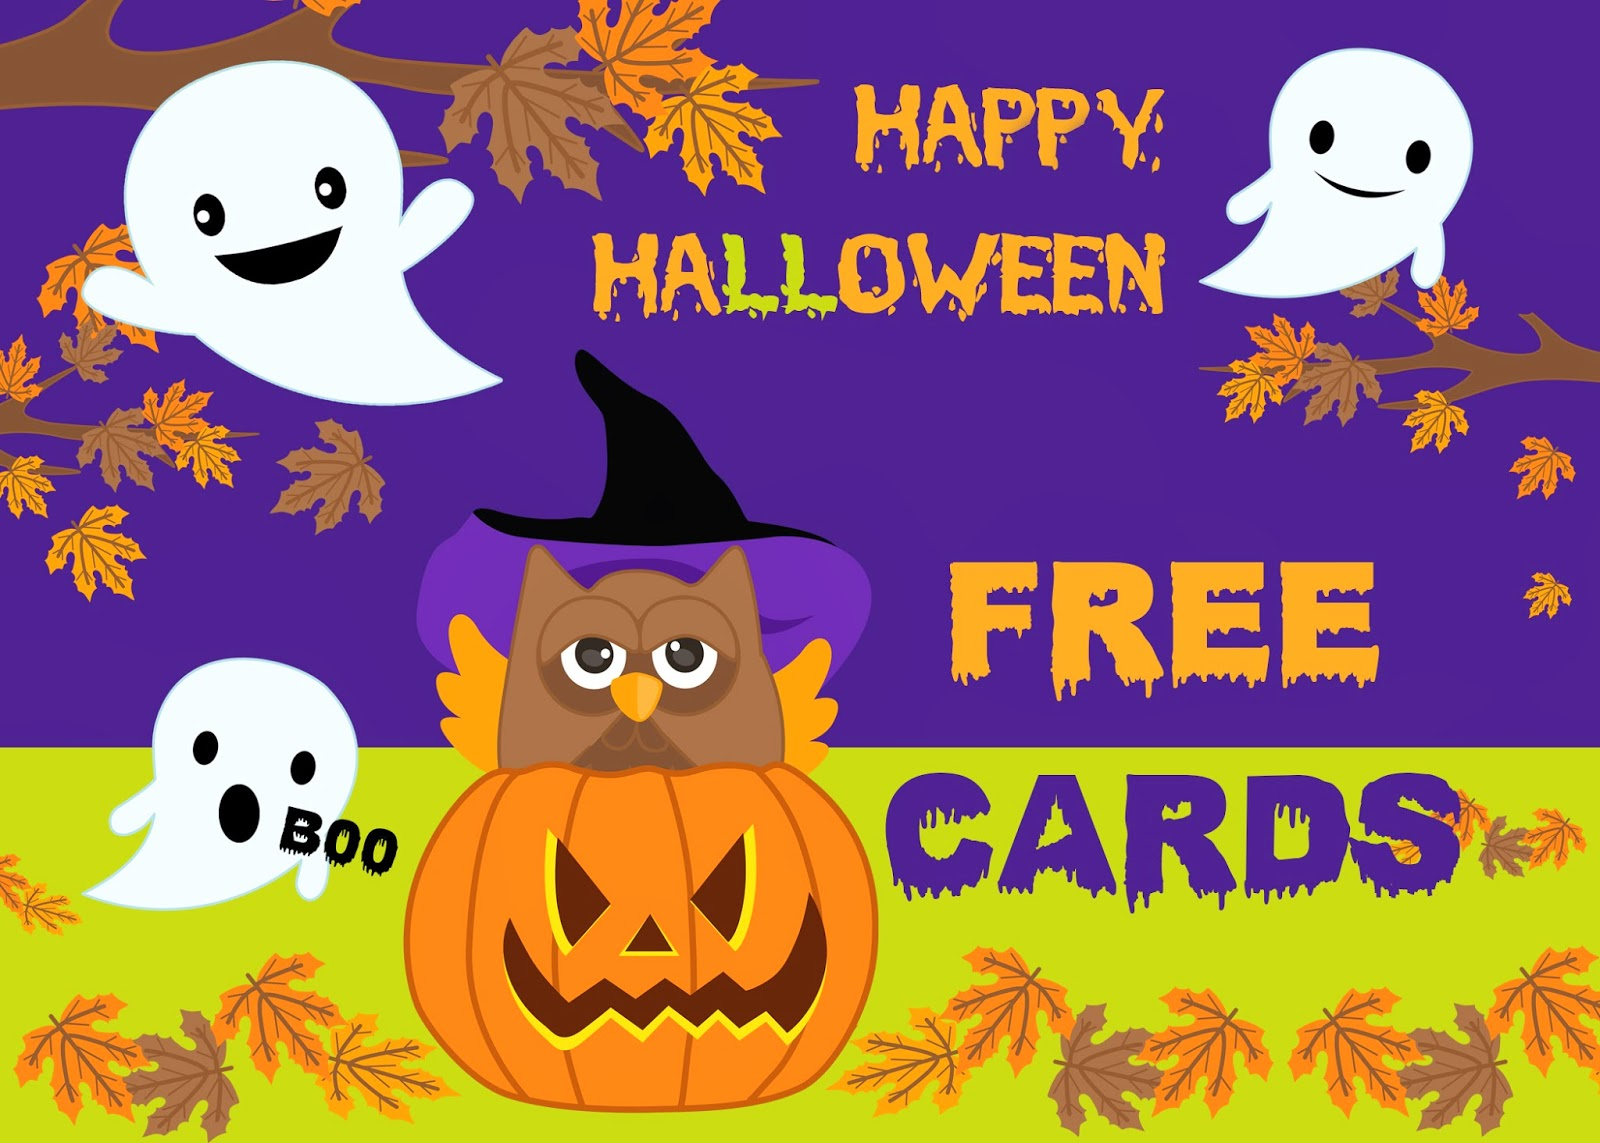 Free Printable Invitation Happy Halloween Free Cards